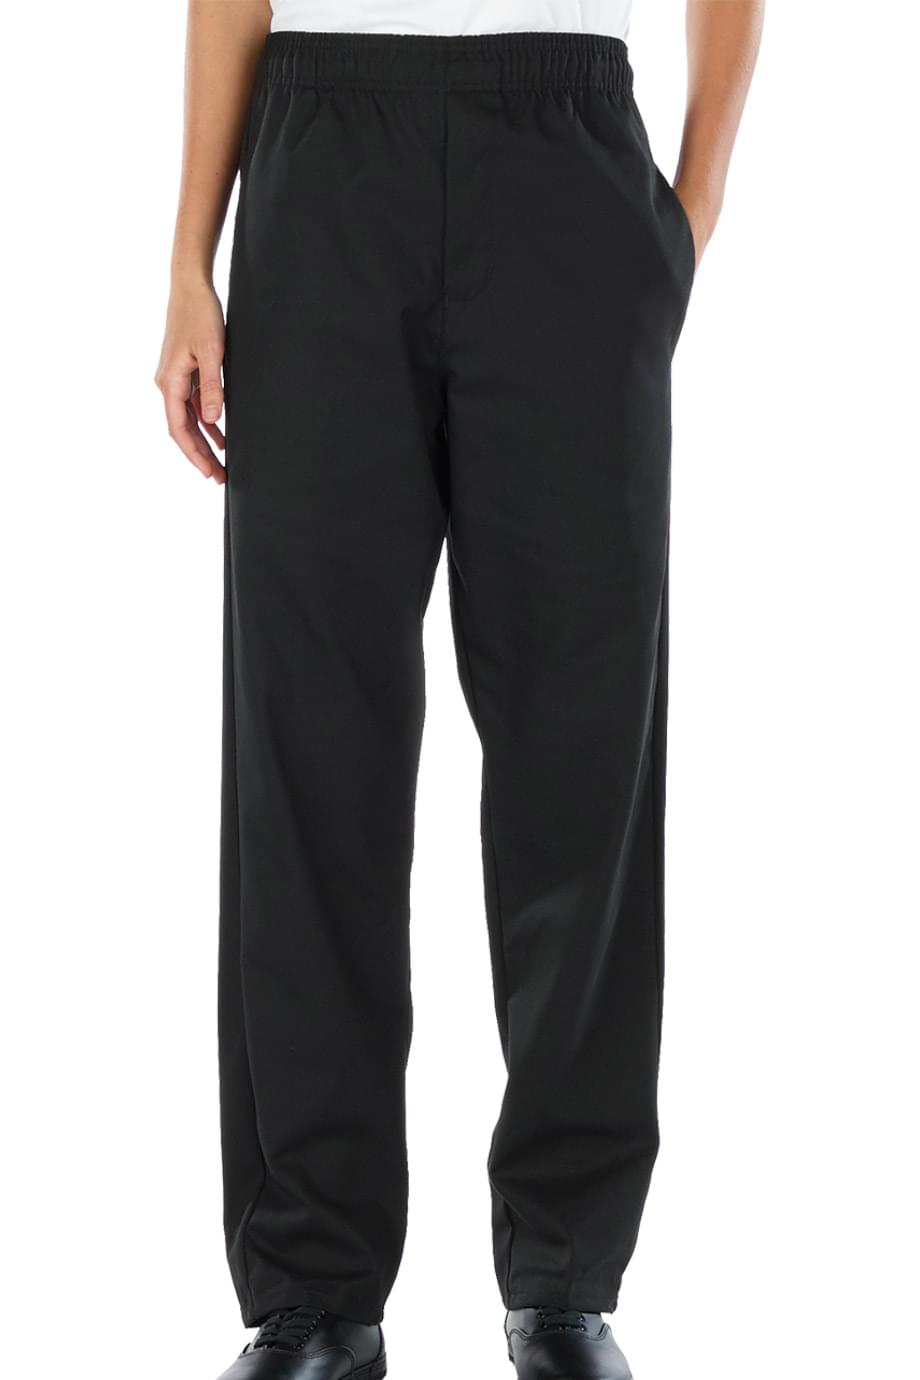 TRADITIONAL CHEF PANT